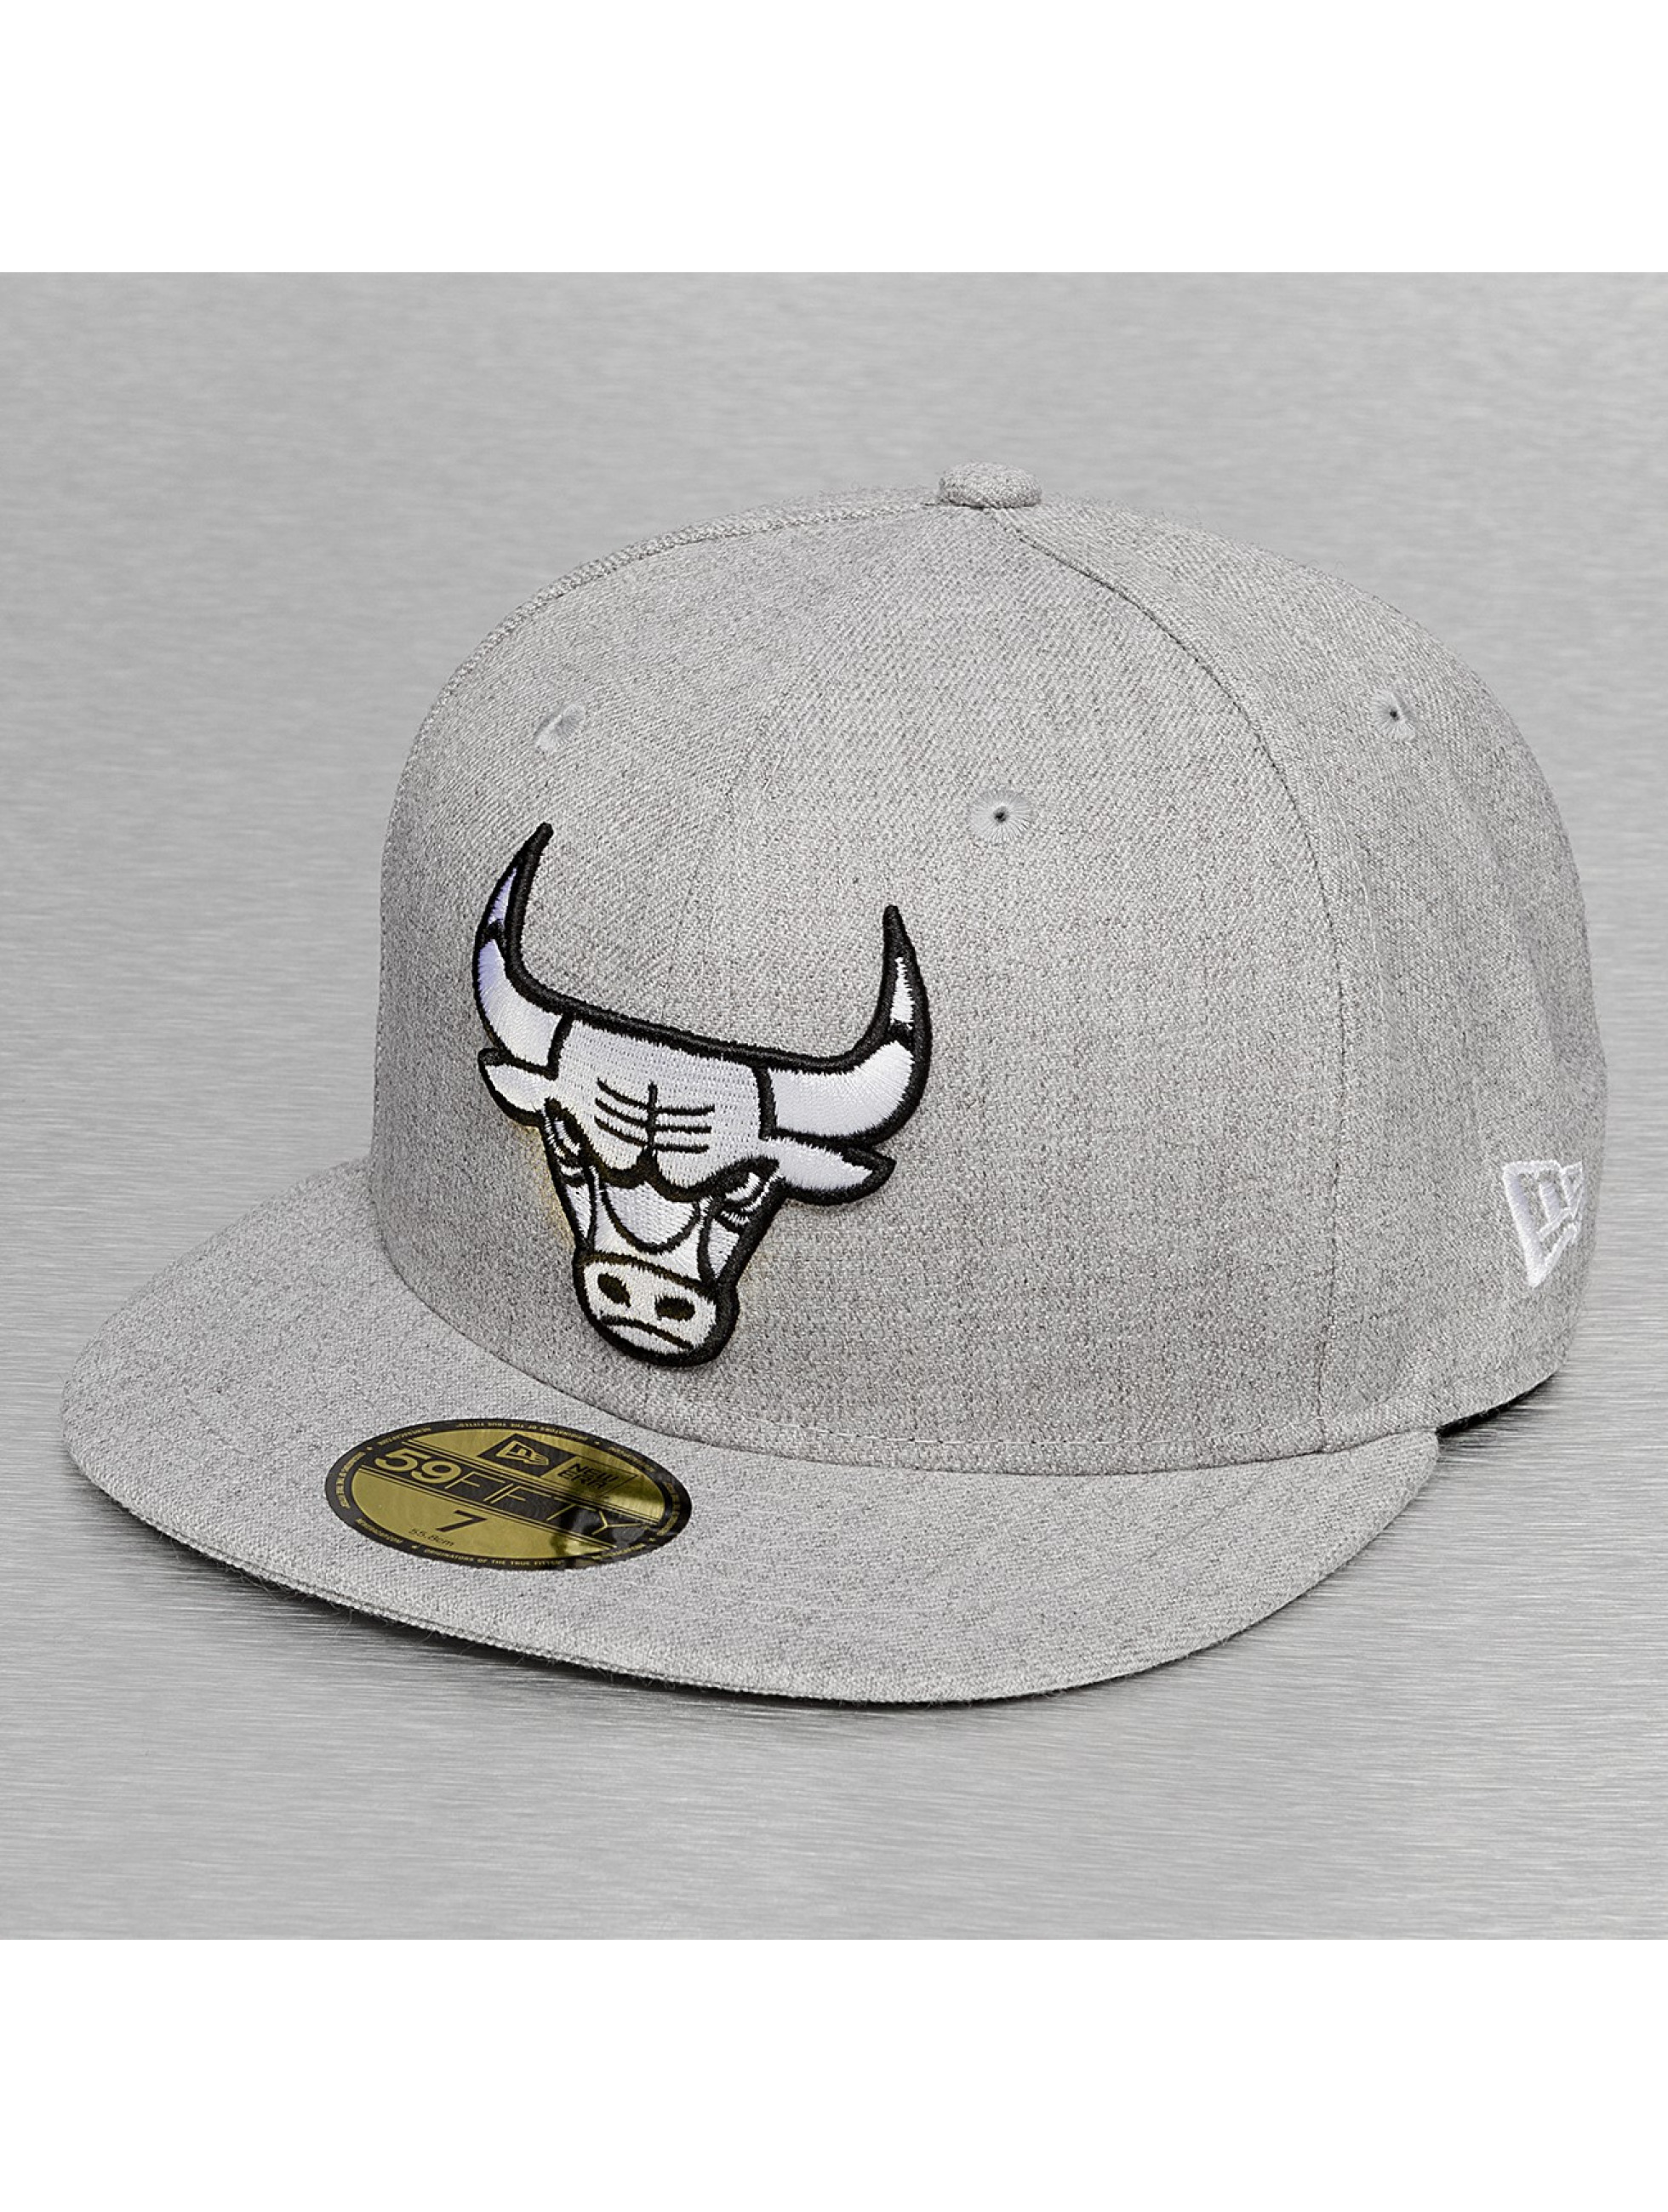 New Era Casquette Fitted Chicago Bulls gris